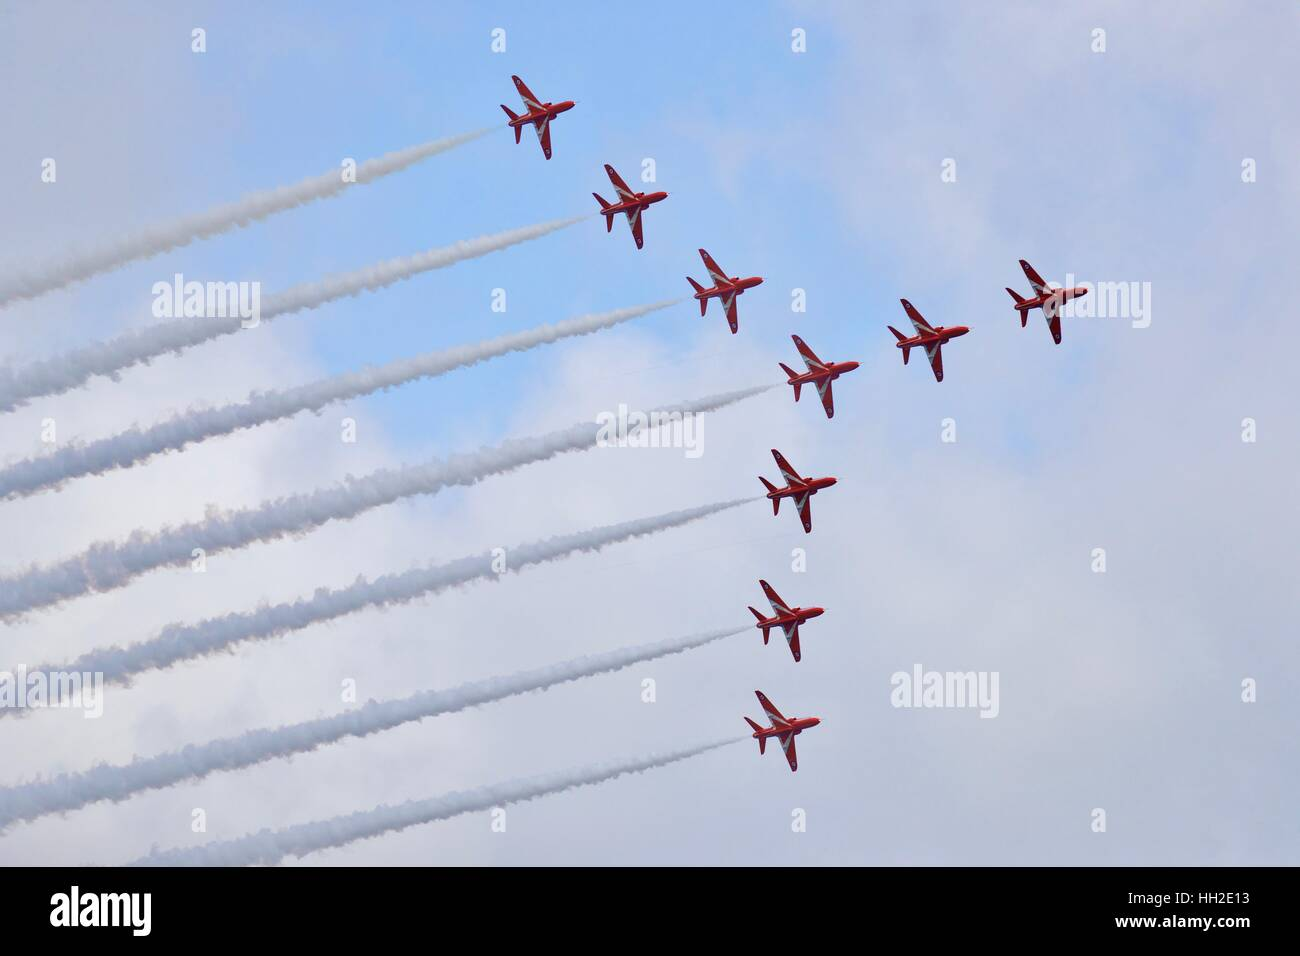 The Royal Air Force Red Arrows aerobatic team  in swan formation - Stock Image